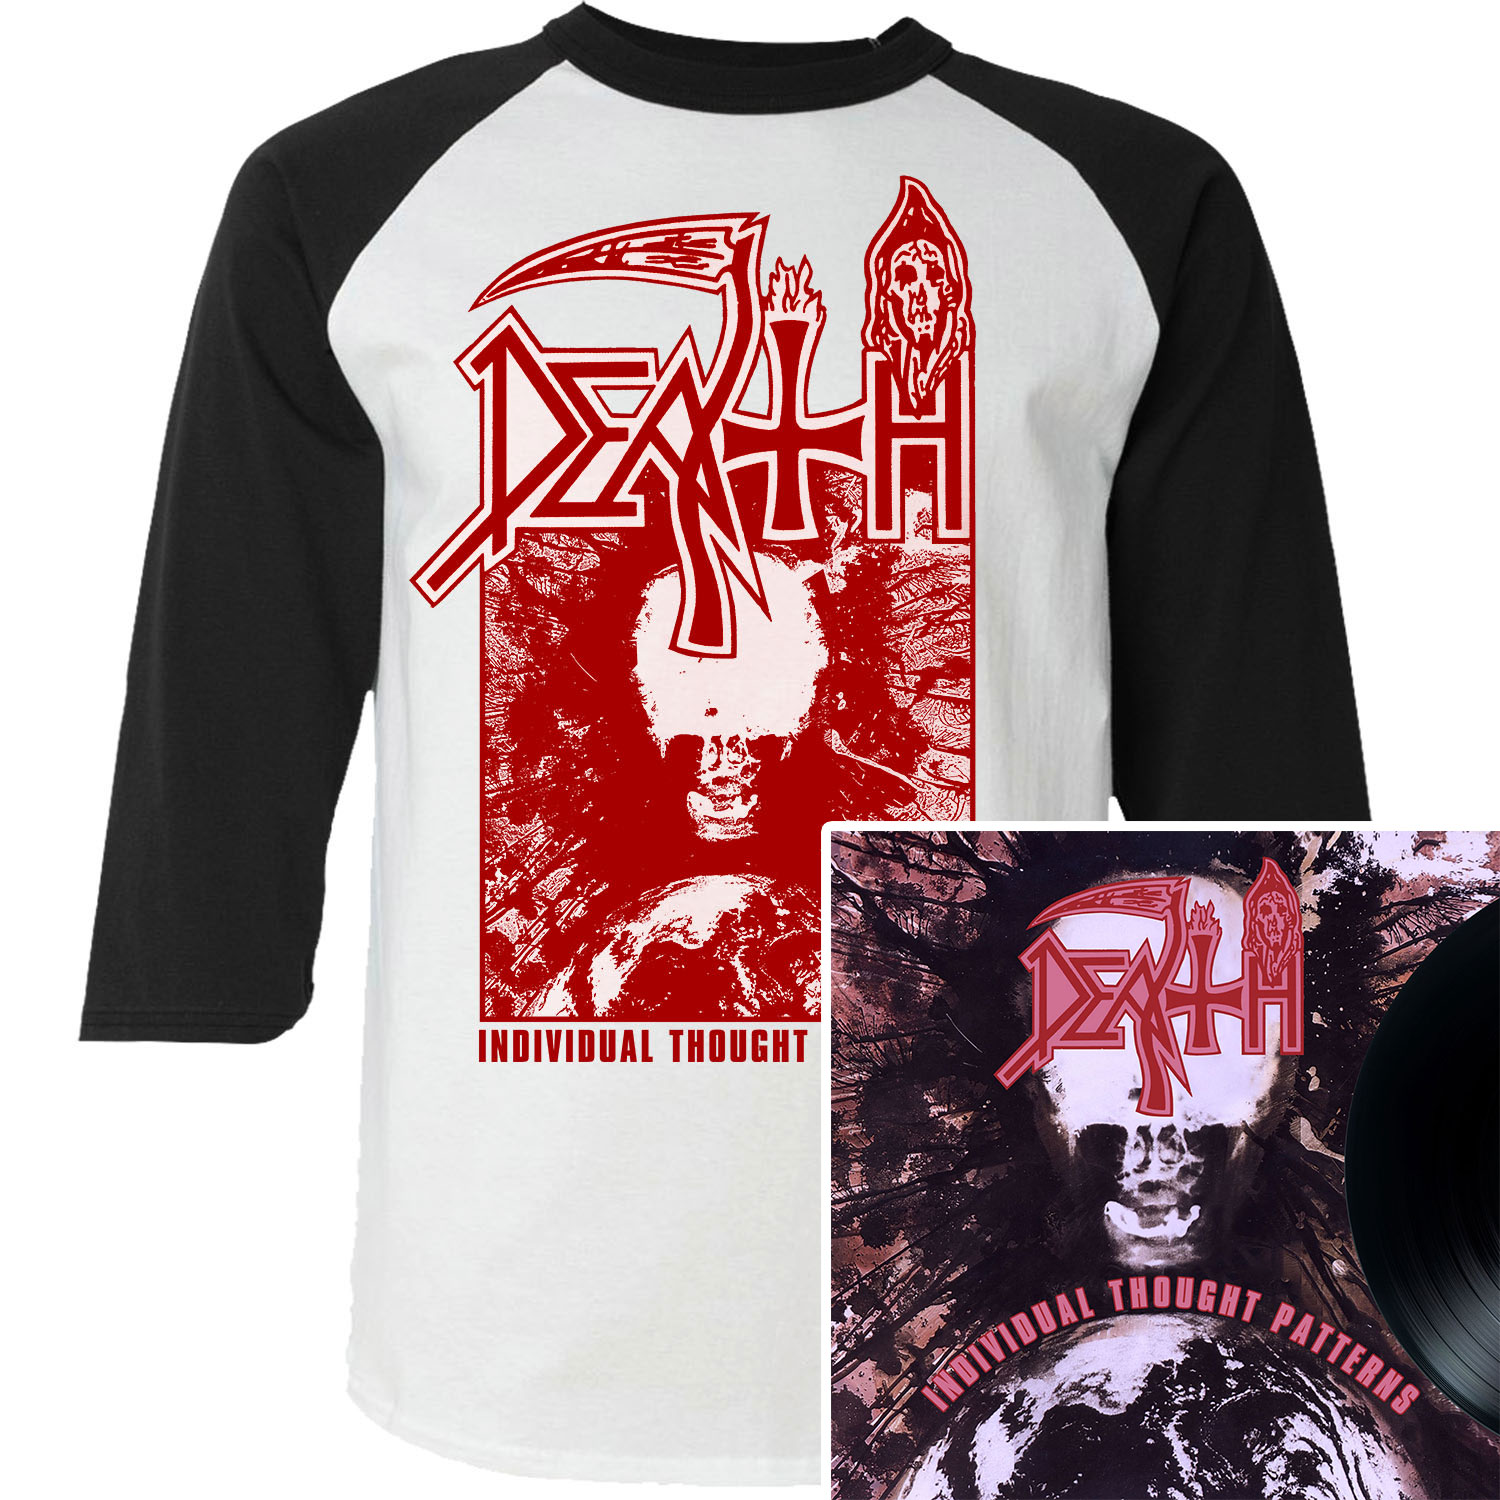 Individual Thought Patterns Raglan + LP Reissue Bundle